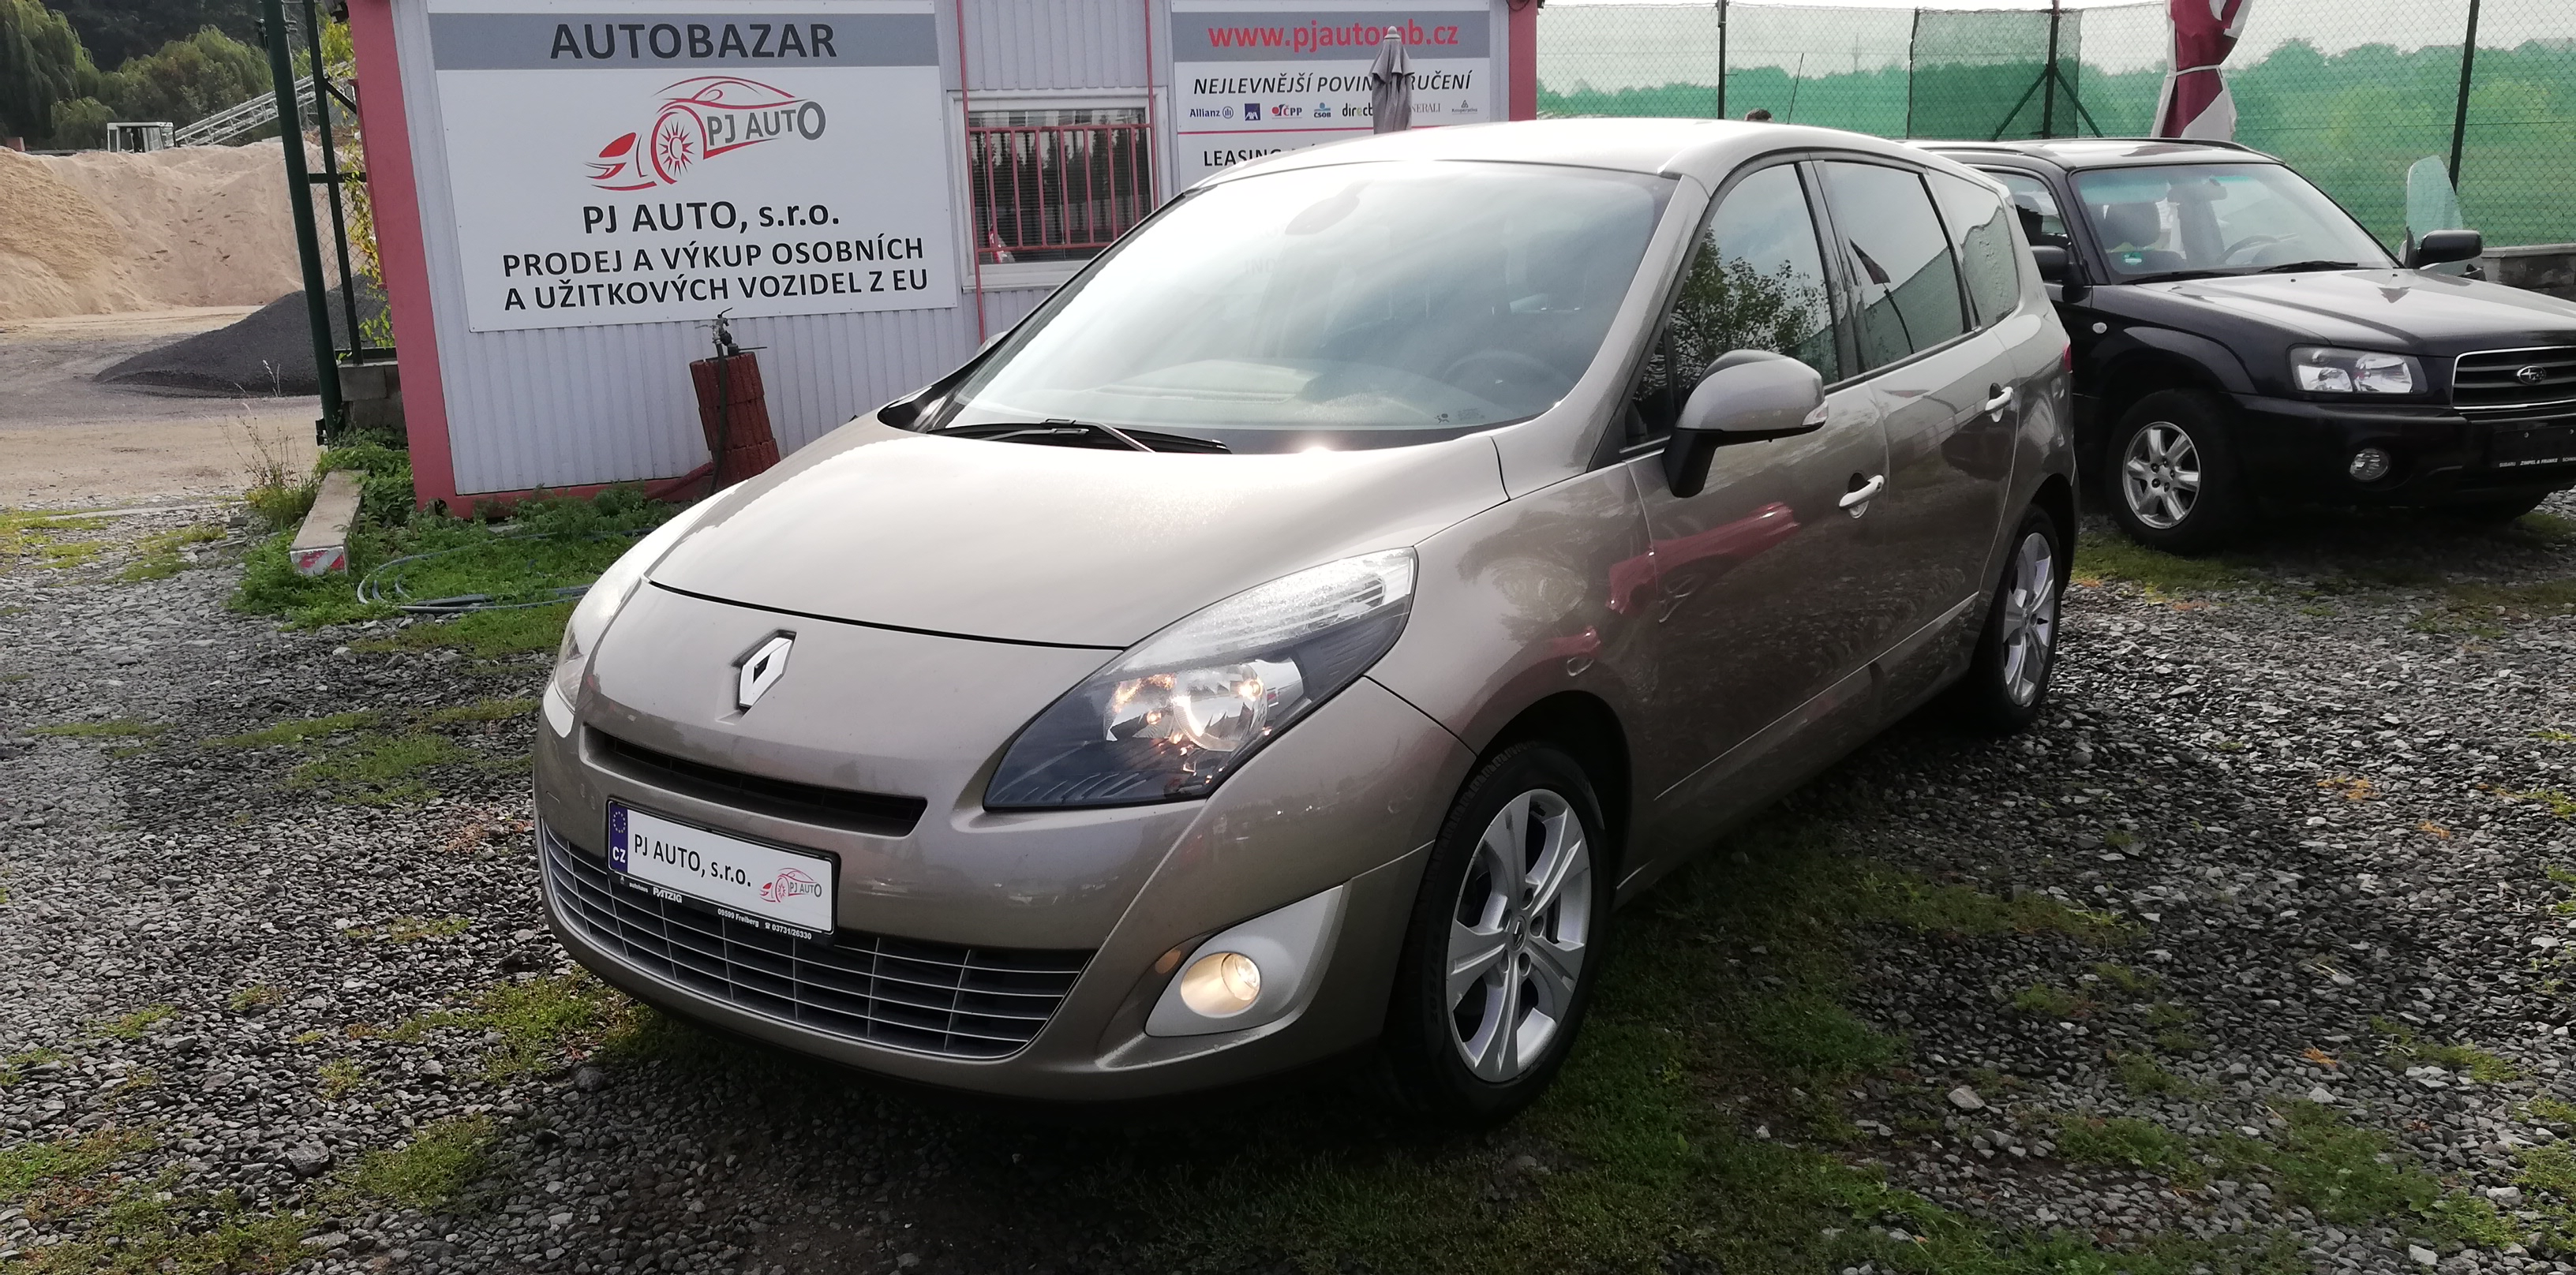 Renault Grand Scenic 1.4 TCe 96kW Comfort 7míst